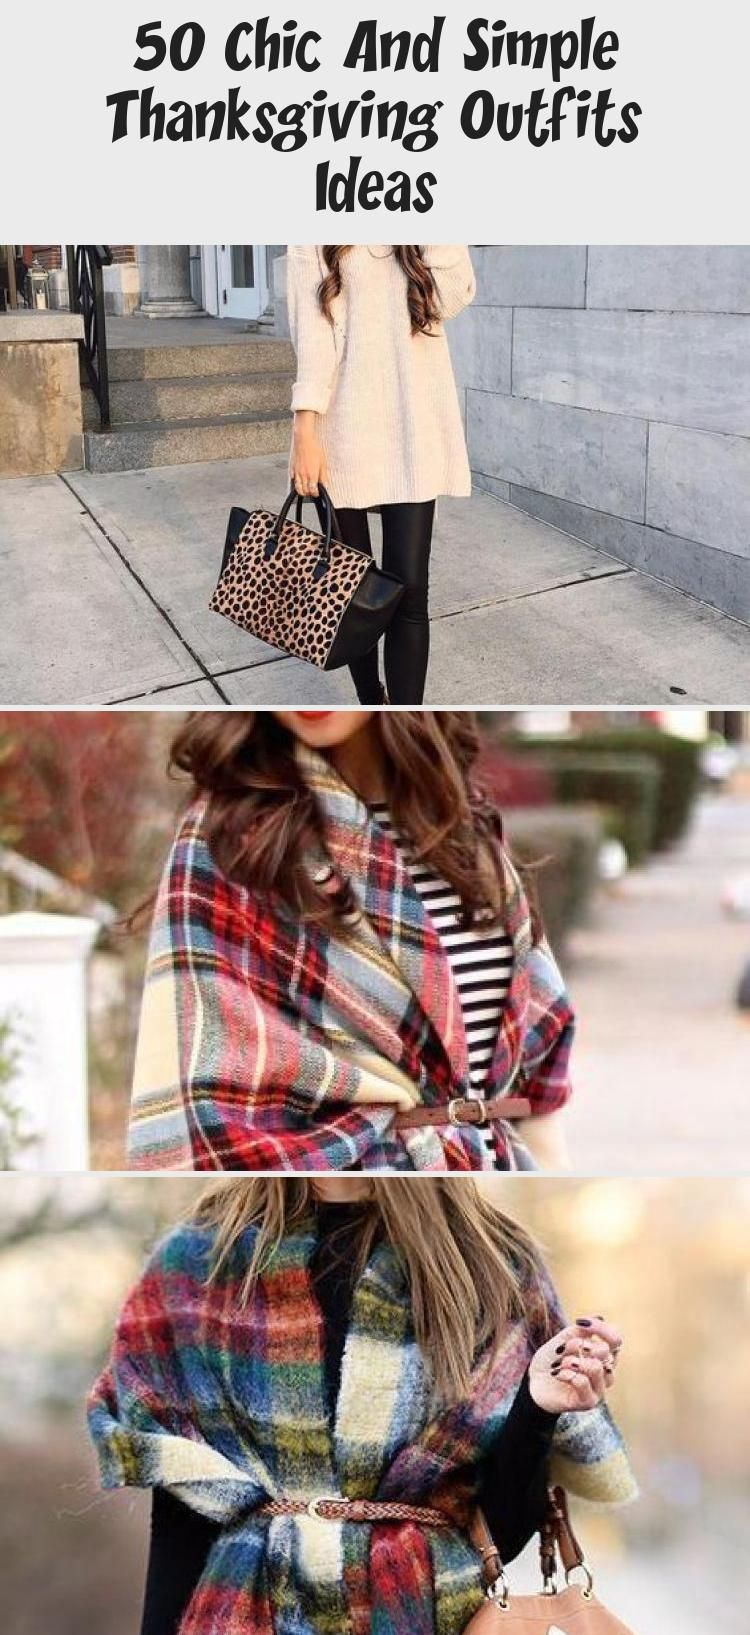 50 Chic And Simple Thanksgiving Outfits Ideas - Duds #thanksgivingoutfit